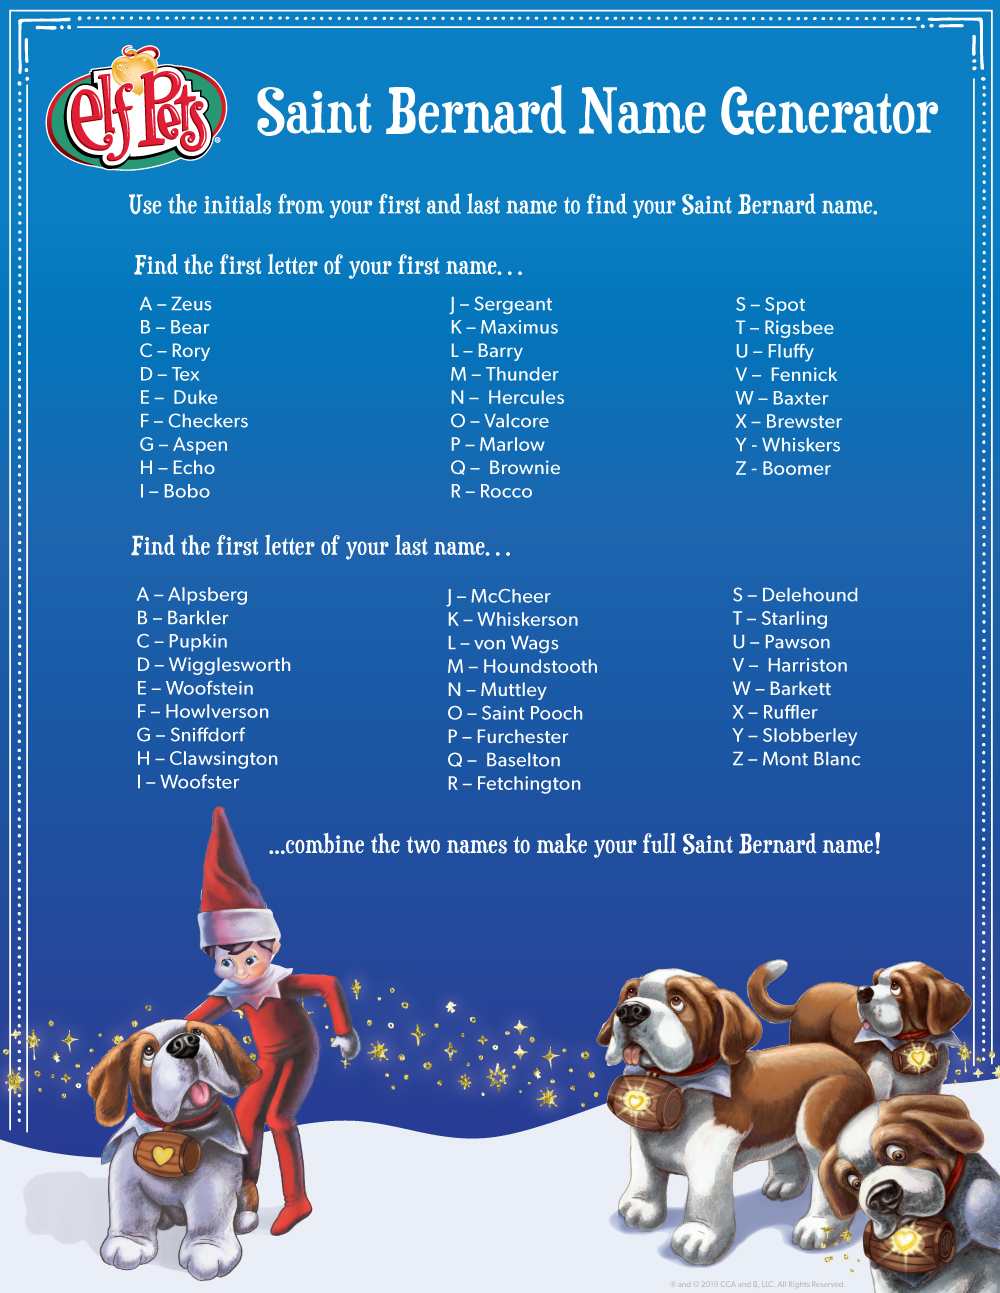 Find Your Saint Bernard Name The Elf On The Shelf